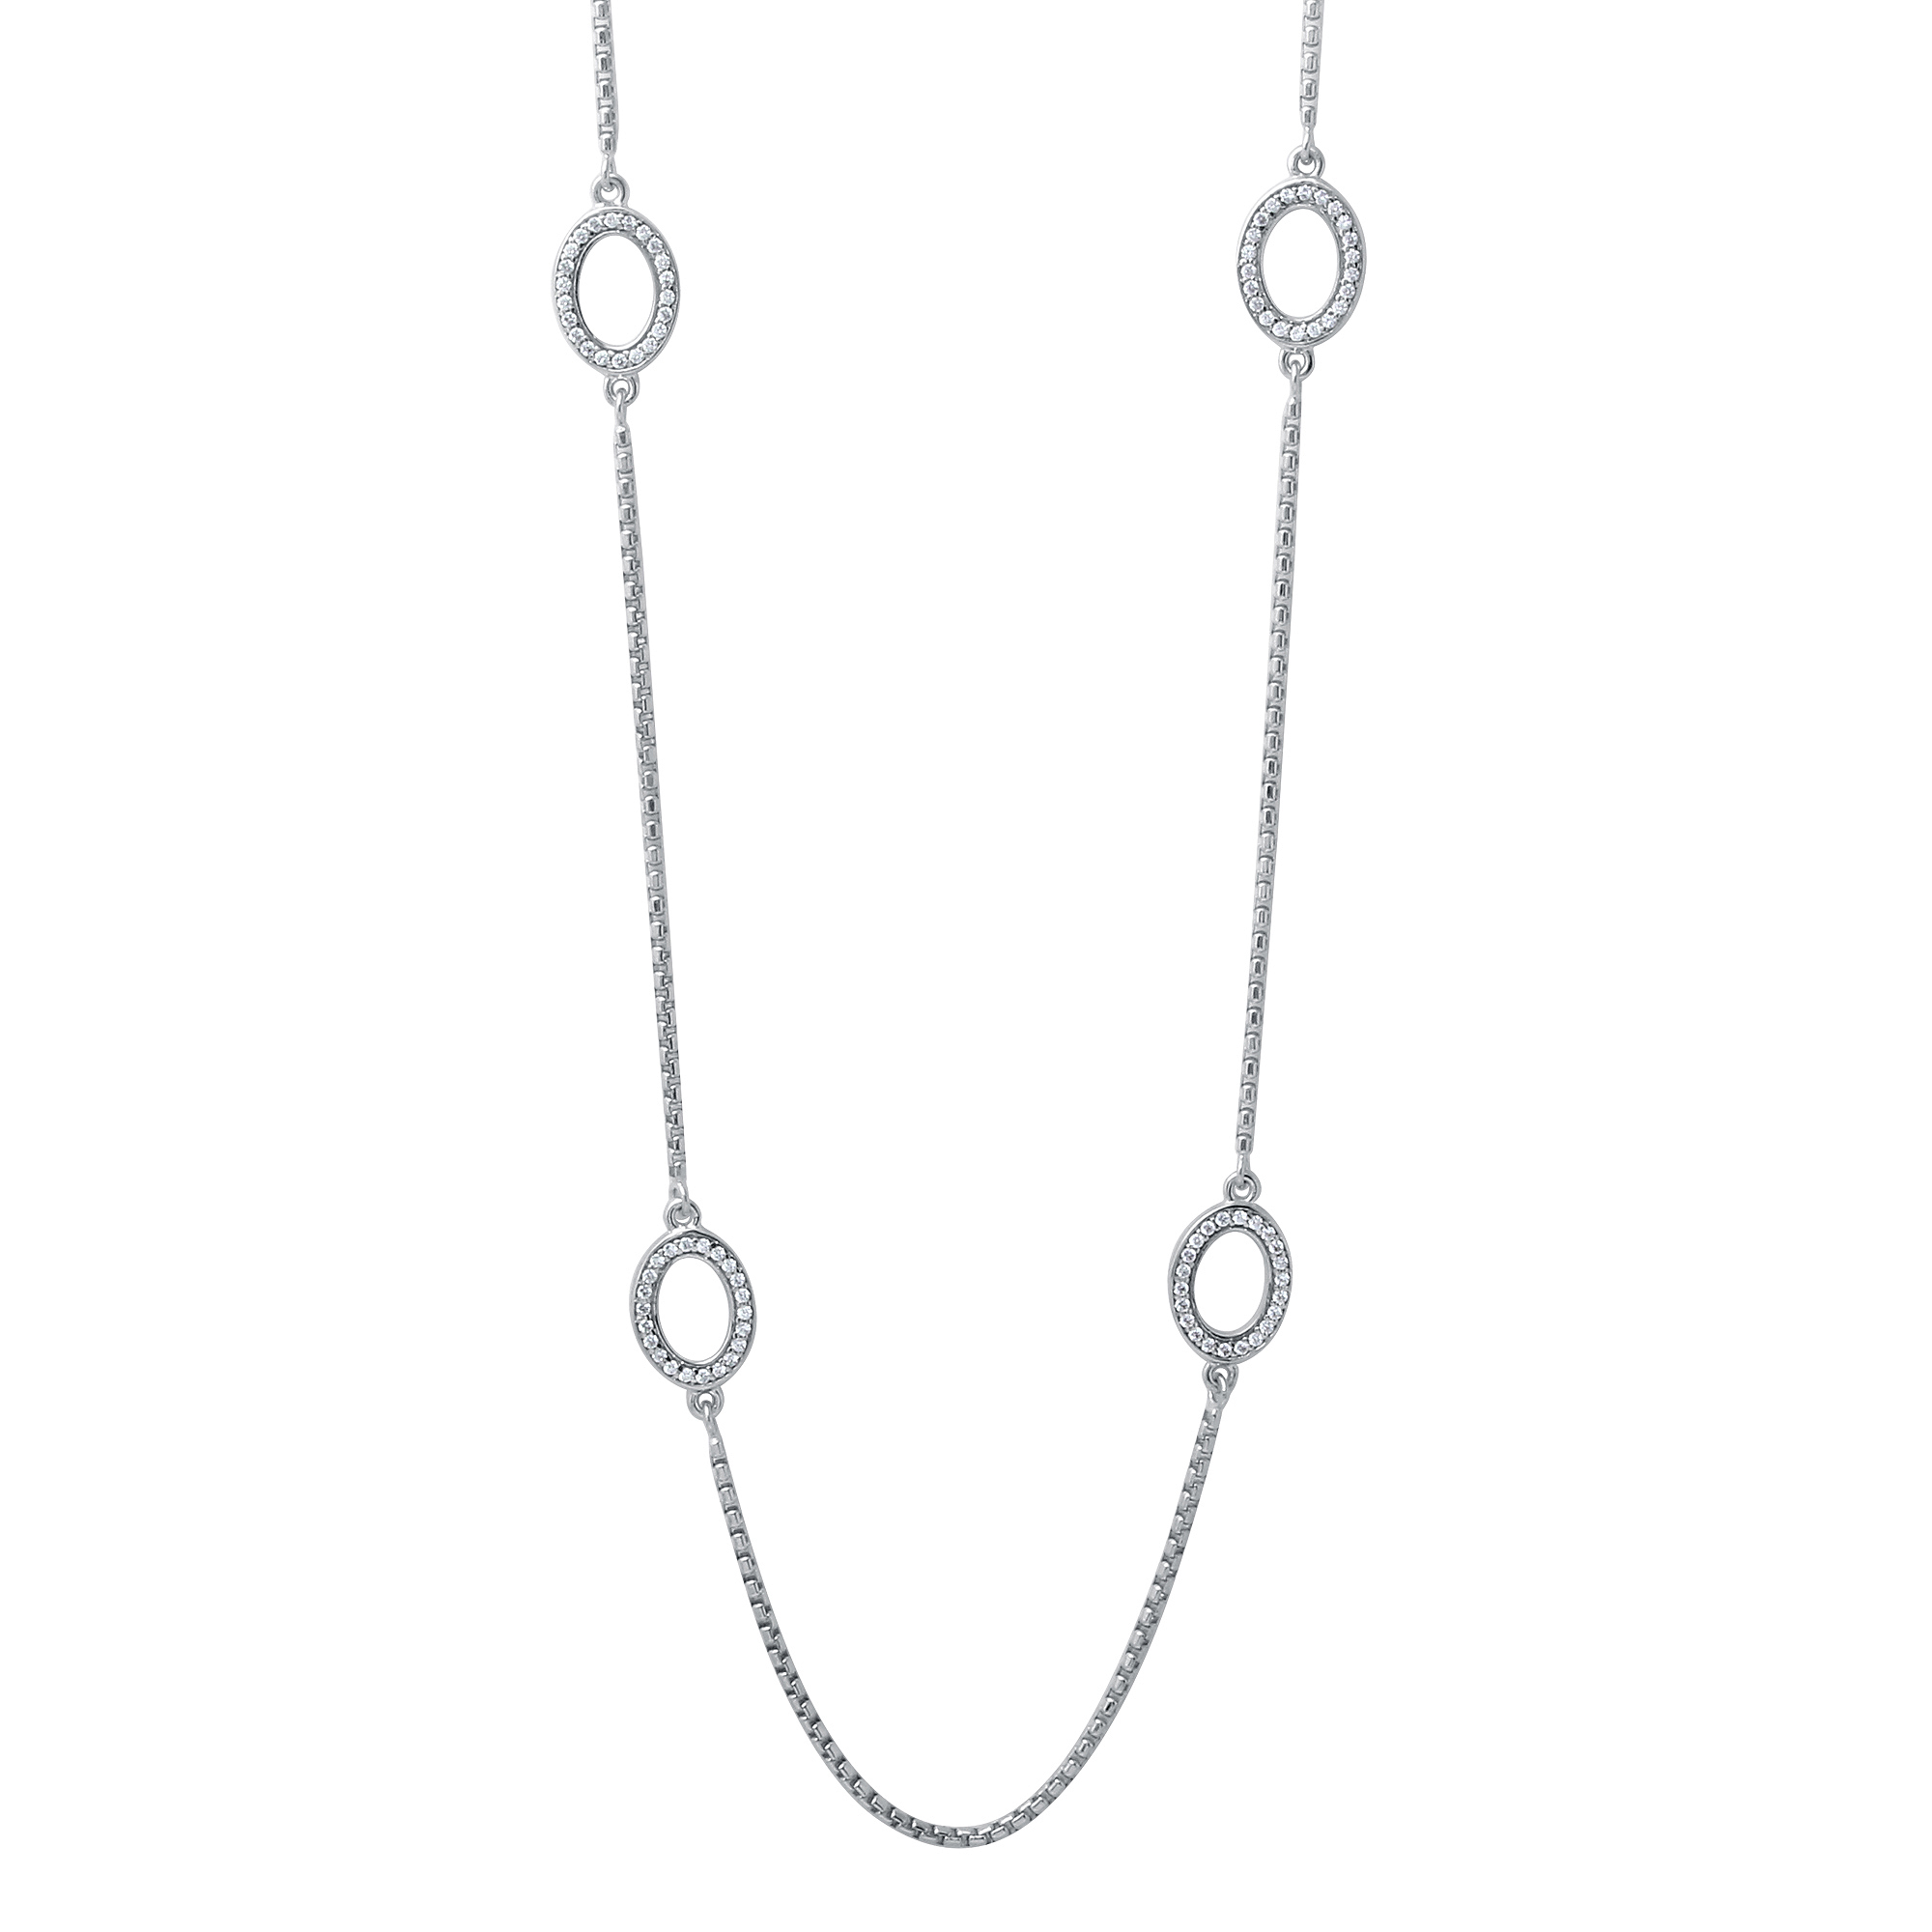 CHARLES GARNIER - Sterling Silver Friendship Necklace